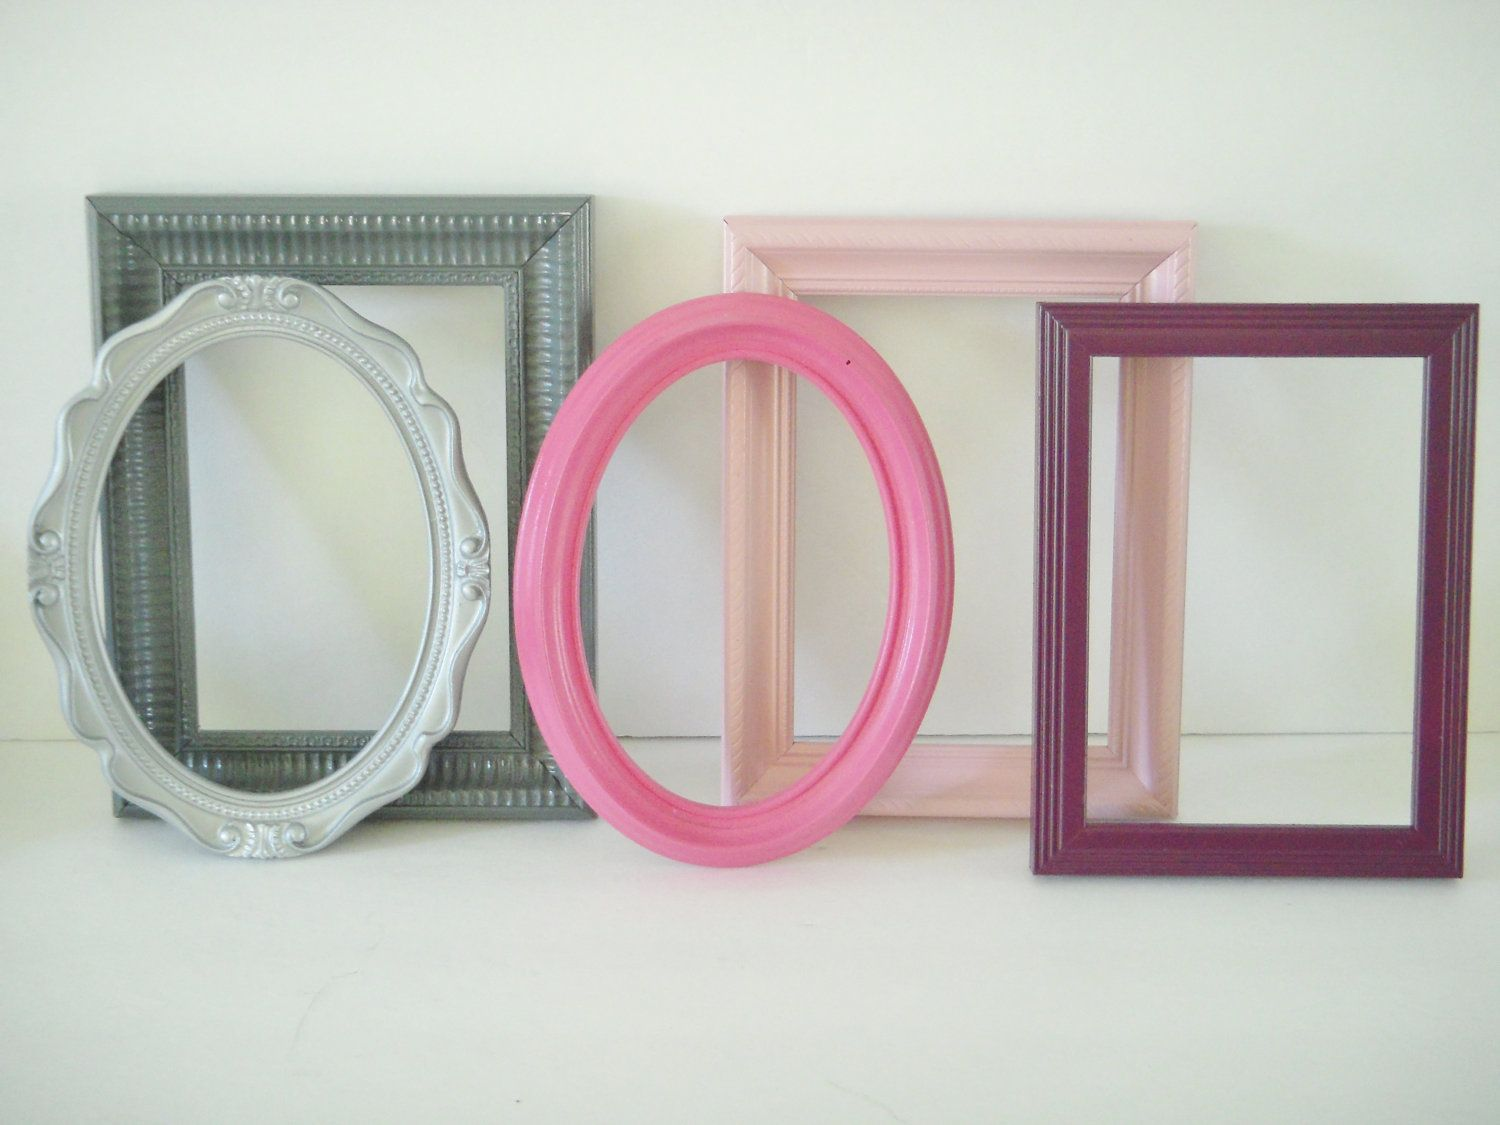 Upcycled Small Ornate Frame Lot by Deligato on Etsy, $27.50